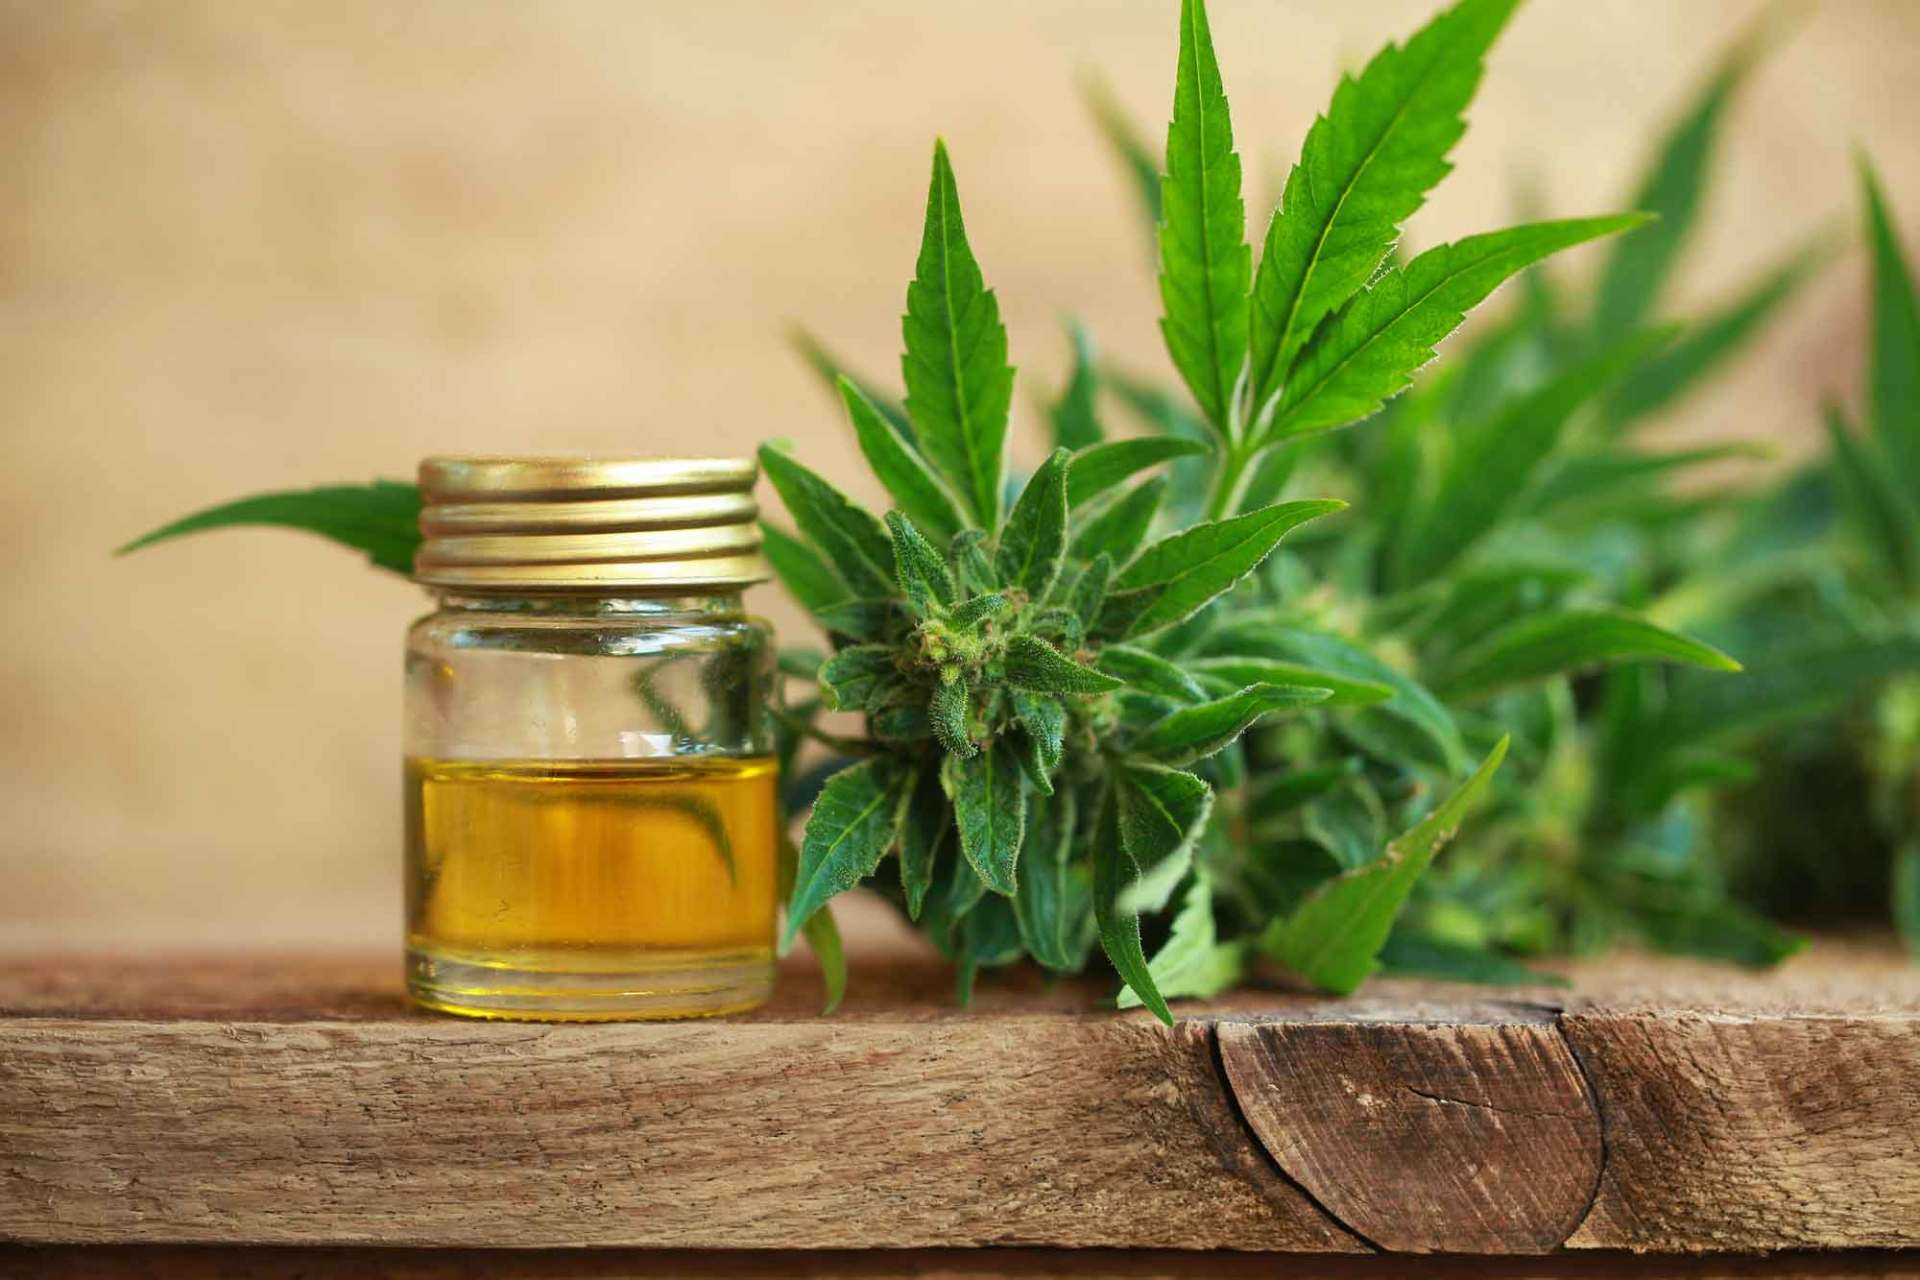 Epilepsy Study Has Found That One Type of CBD Is Superior